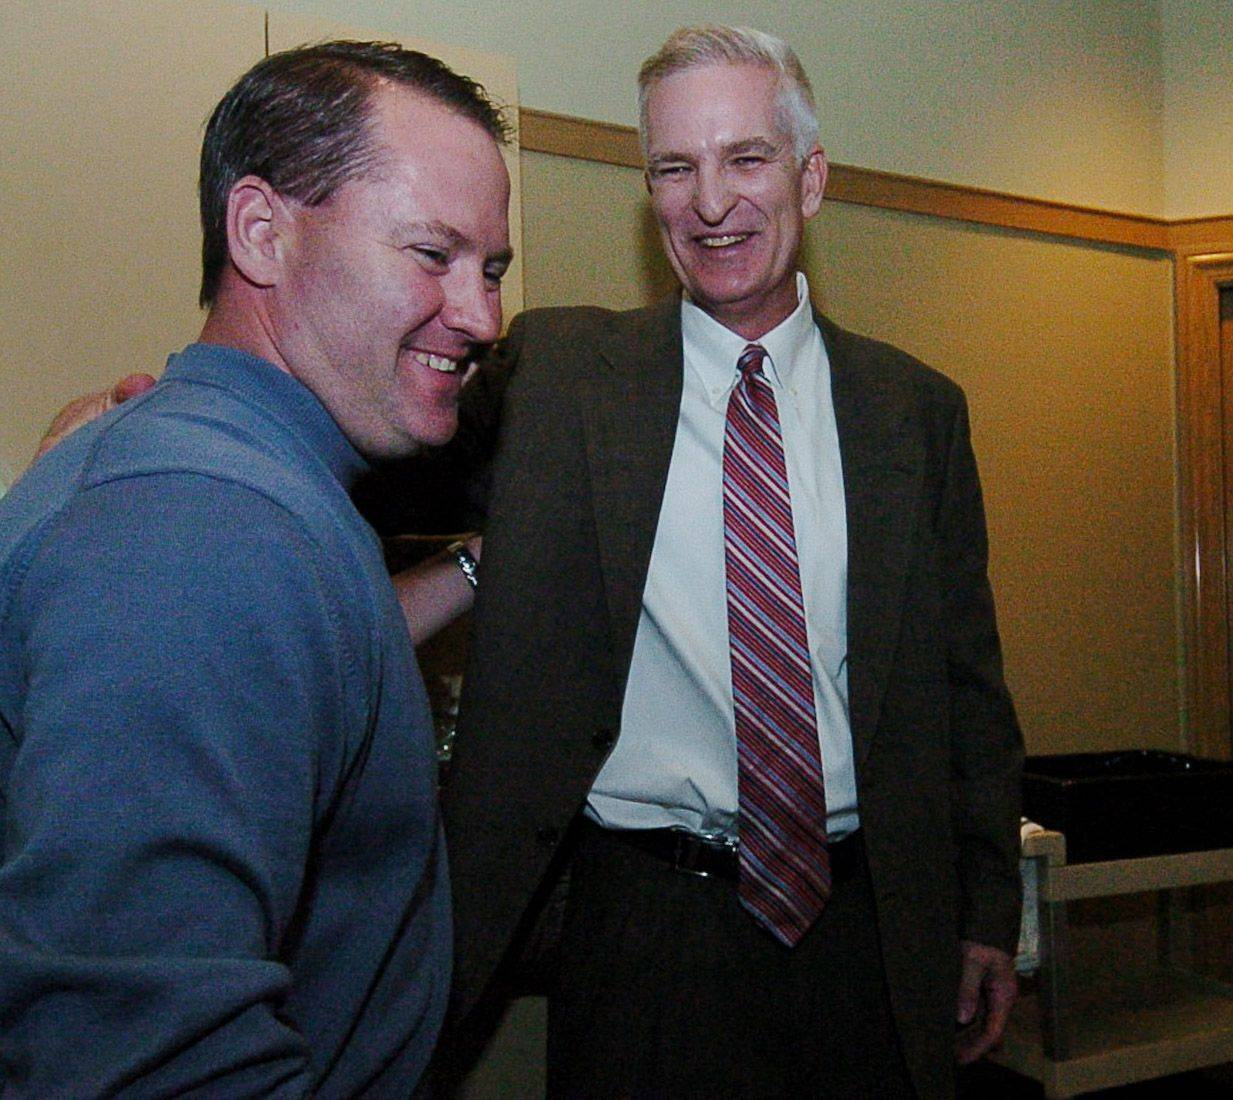 Lake County Sheriff Mark Curran, right, shakes hands with 51st District state Rep. Ed Sullivan while waiting for election results Tuesday night. Unofficial counts show Curran won his re-election bid.